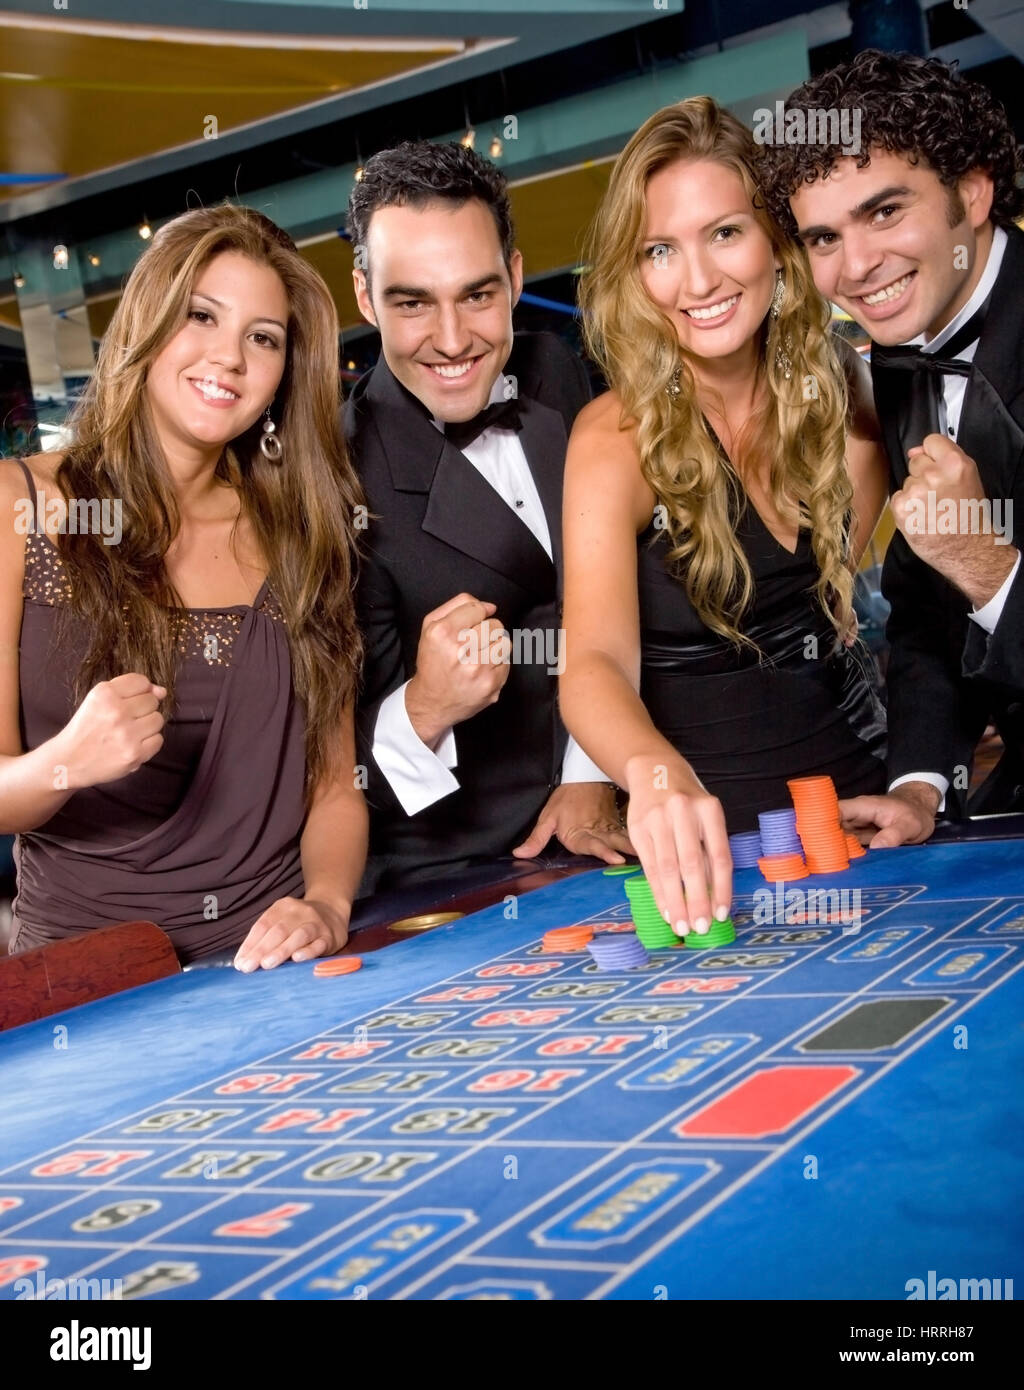 Group of casino gamblers on the roulette - Stock Image